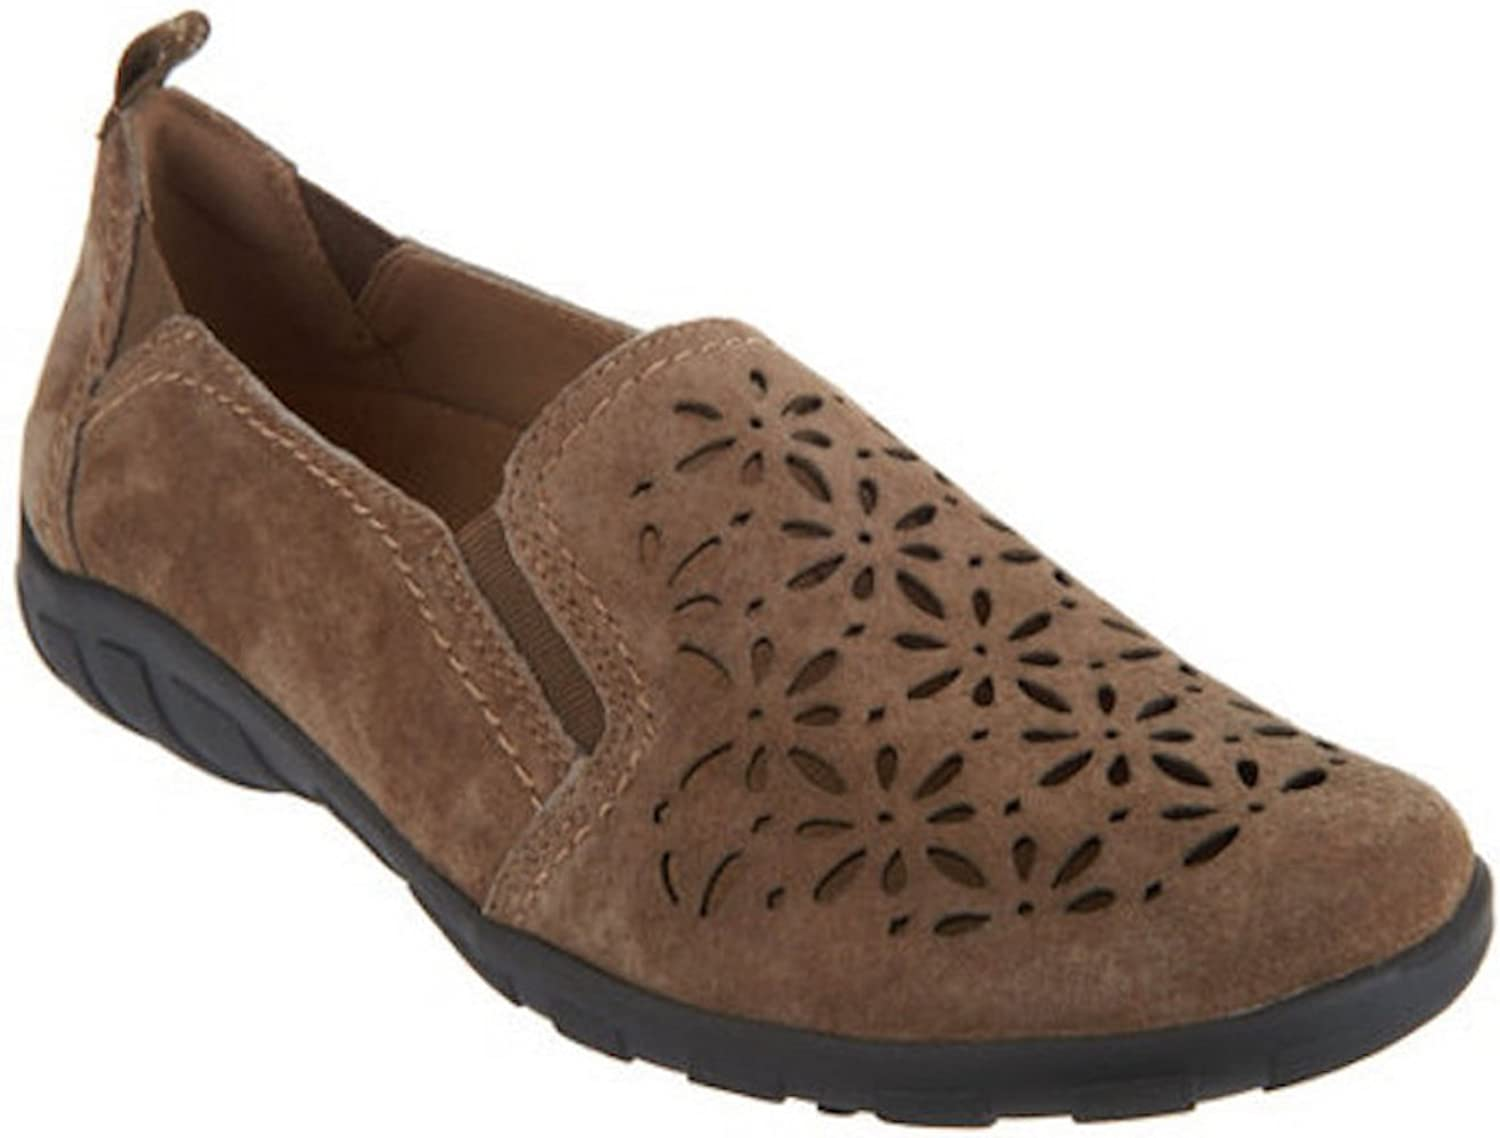 d3529512133d Earth Origins Rikki Suede Perforated Slip On Shoes. 6(M) US